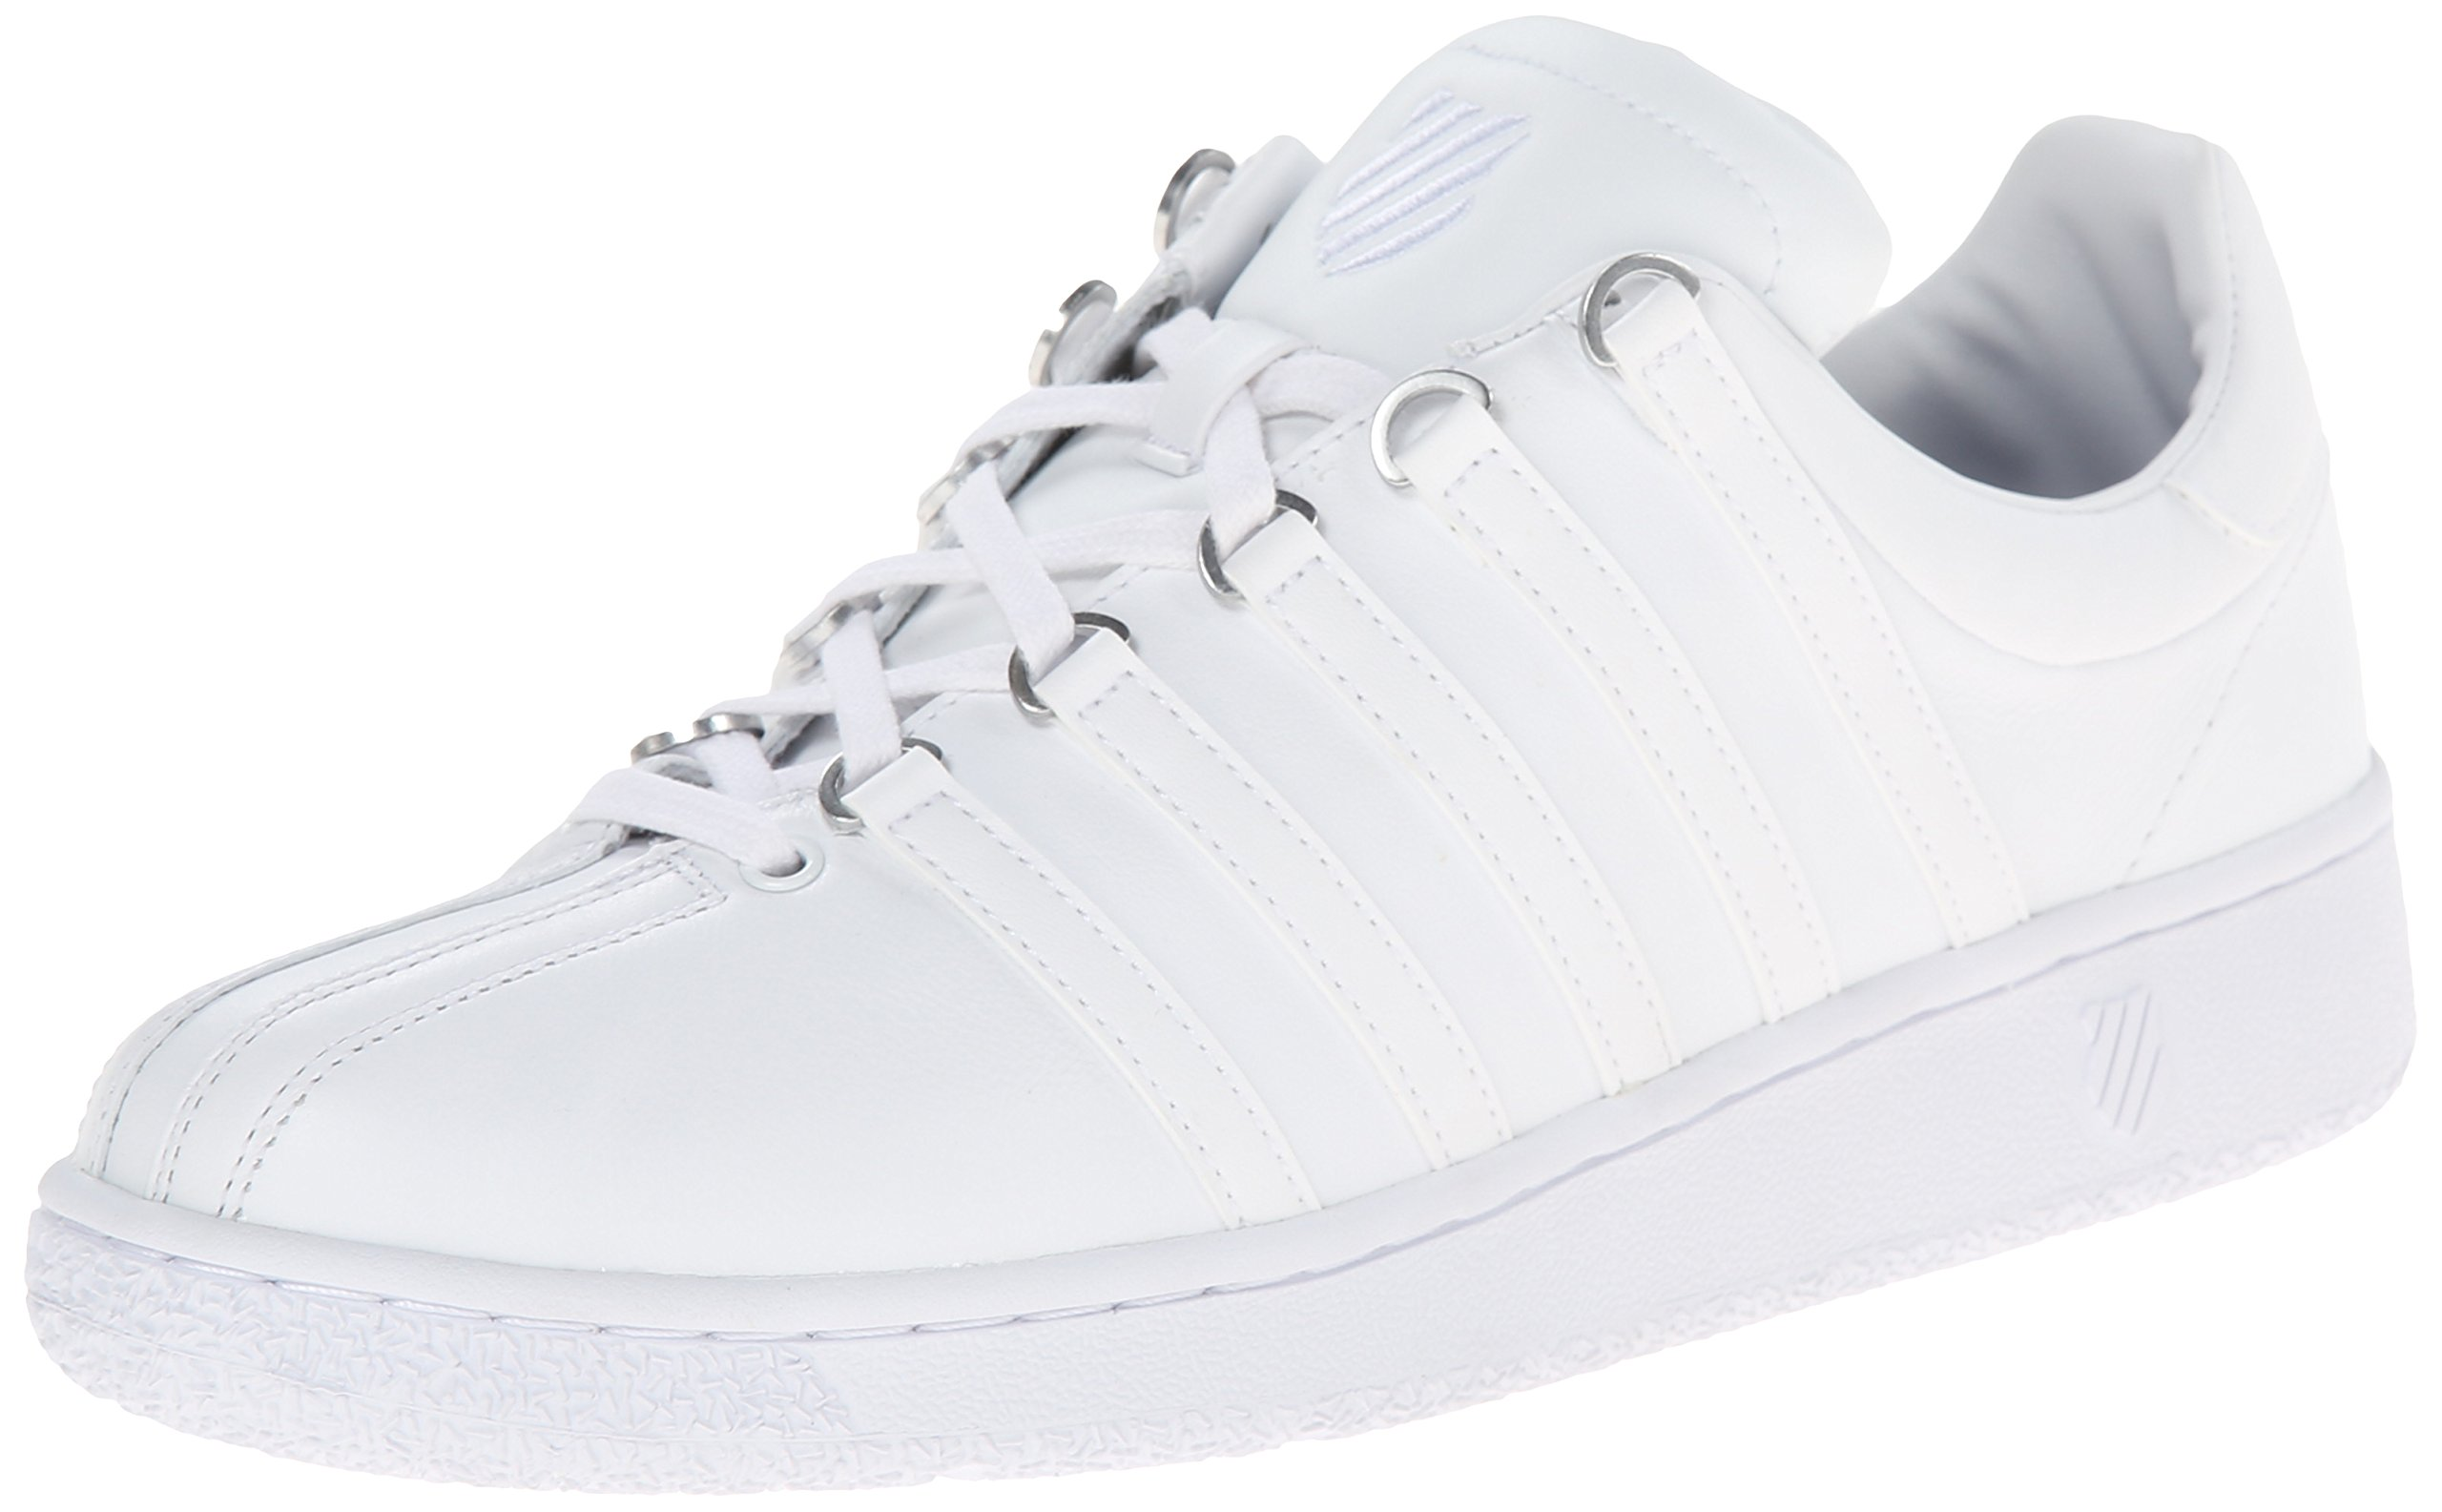 K-Swiss Men's Classic Vintage Updated Iconic Shoe, White/White, 11 M US by K-Swiss